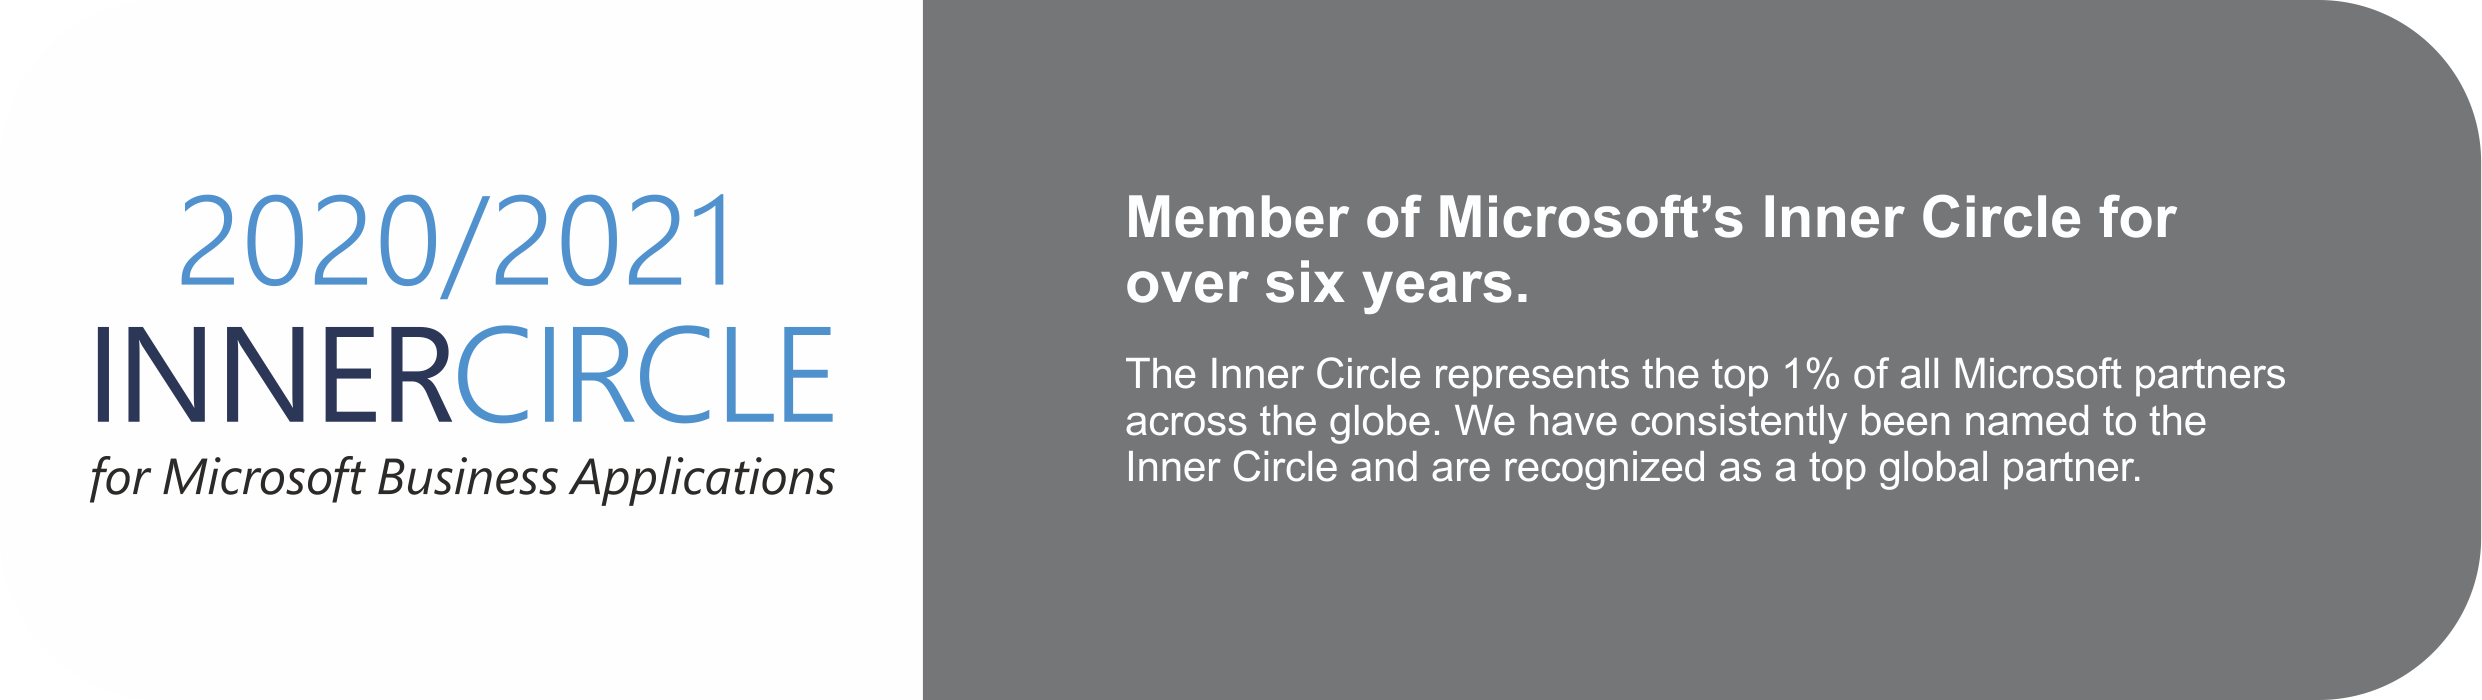 sa.global Member of Microsoft's Inner Circle for over six years